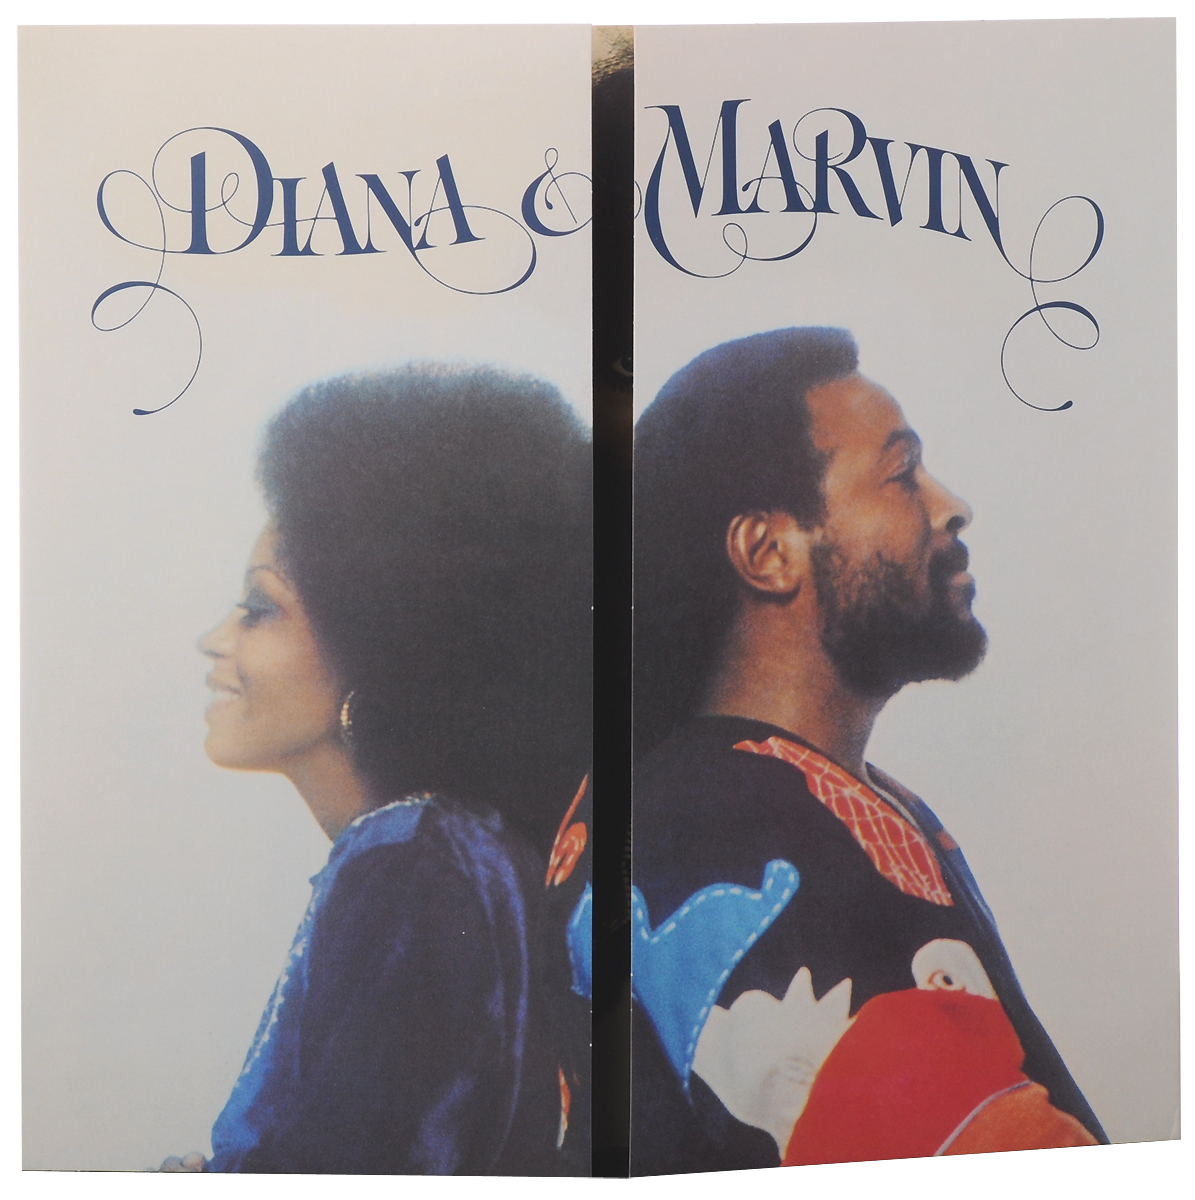 Марвин Гэй,Дайана Росс Marvin Gaye, Diana Ross. Diana & Marvin (LP) дайана кролл diana krall all for you 2 lp